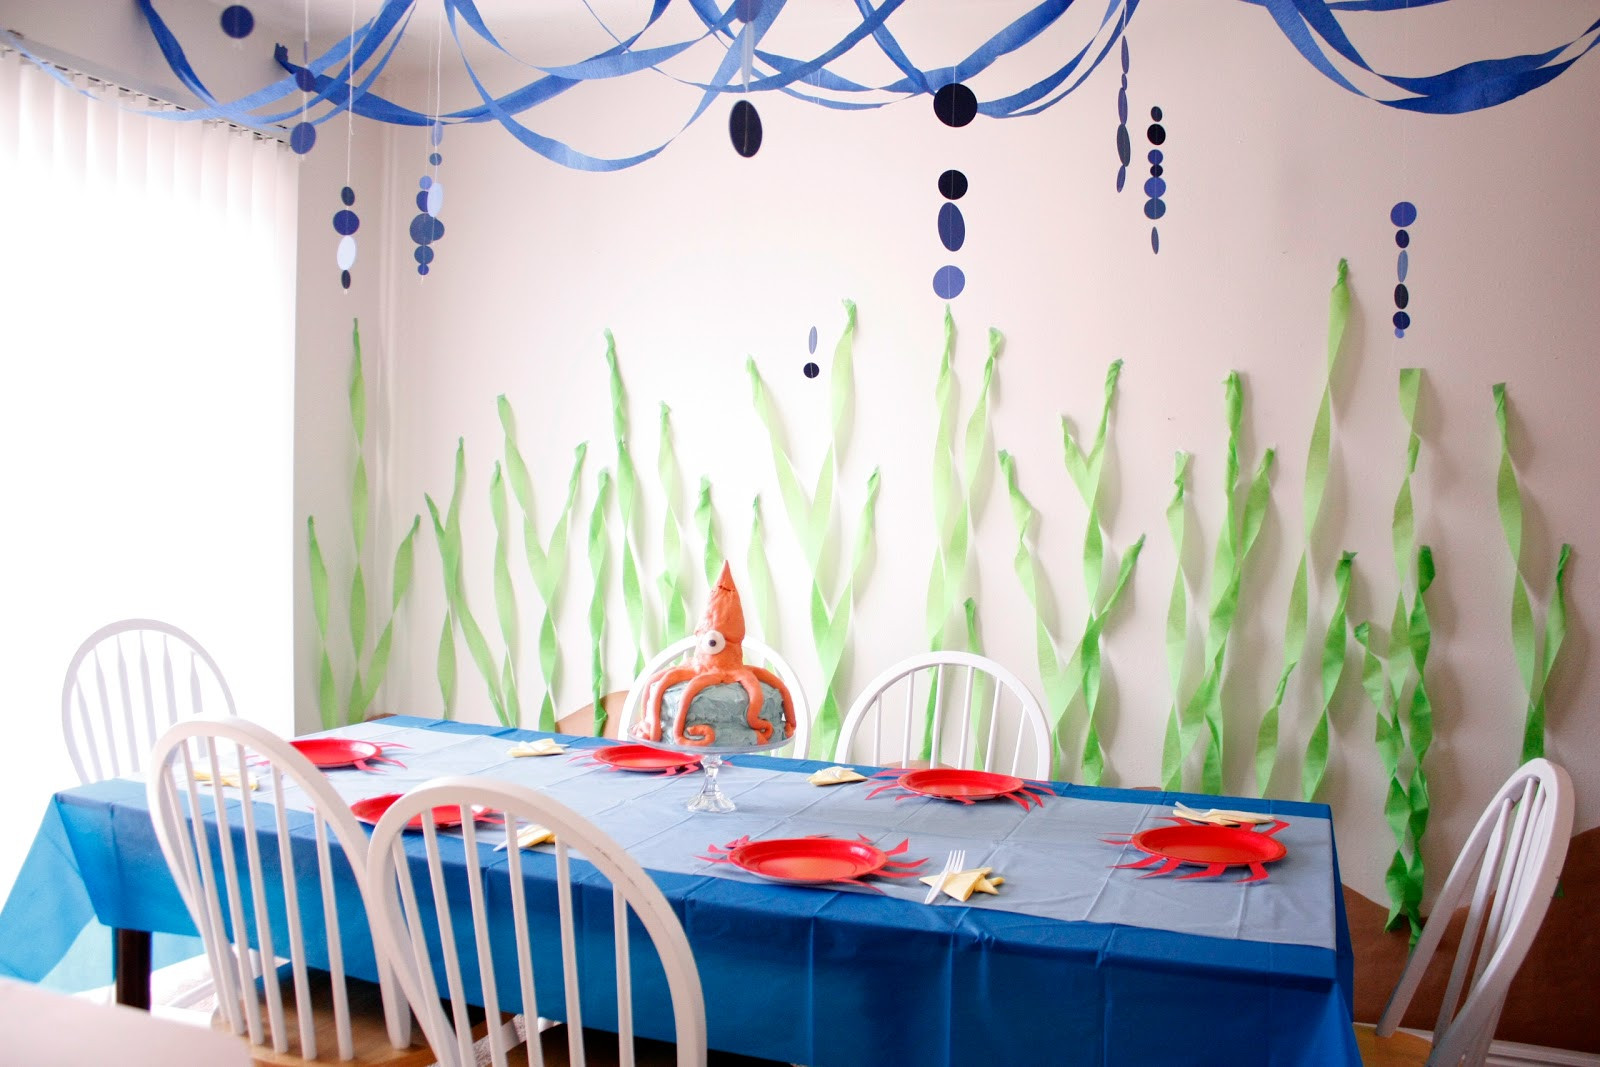 Under The Sea Birthday Decorations  Under the Sea Birthday Party – Part Two